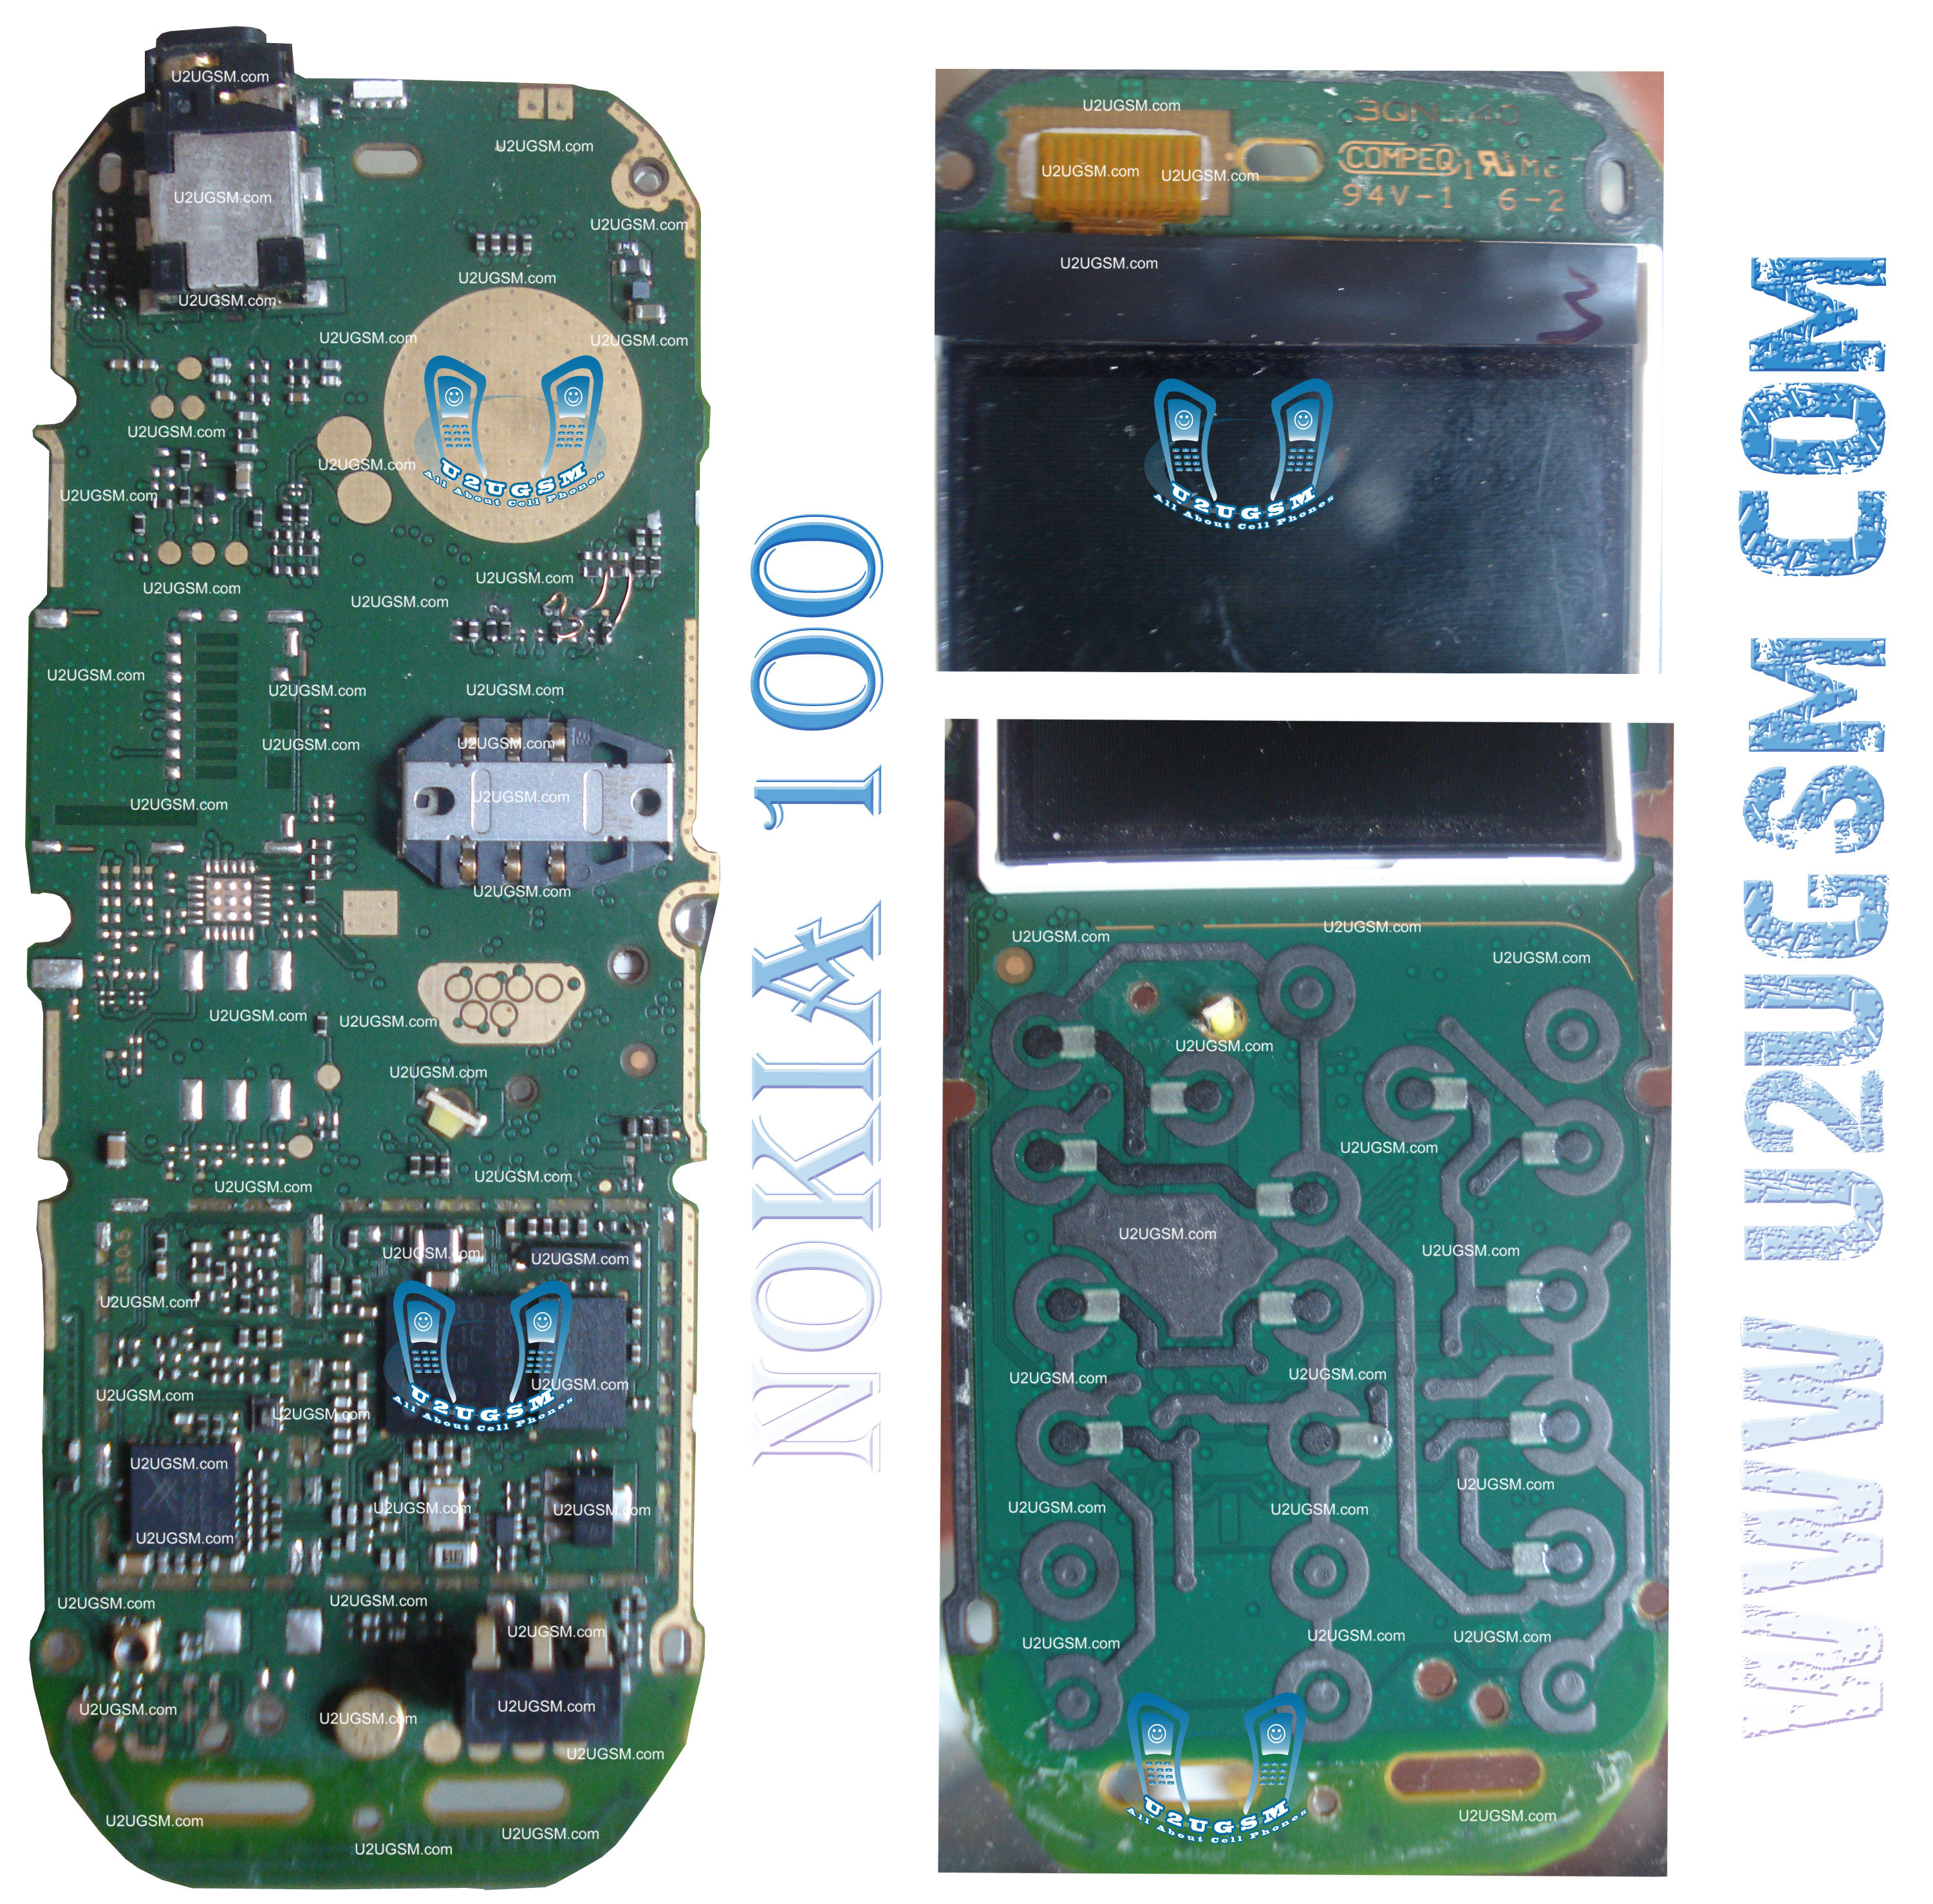 Nokia Circuit Diagram Pdf Great Installation Of Wiring Mobile 100 Full Pcb Mother Board Layout Rh U2ugsm Com 105